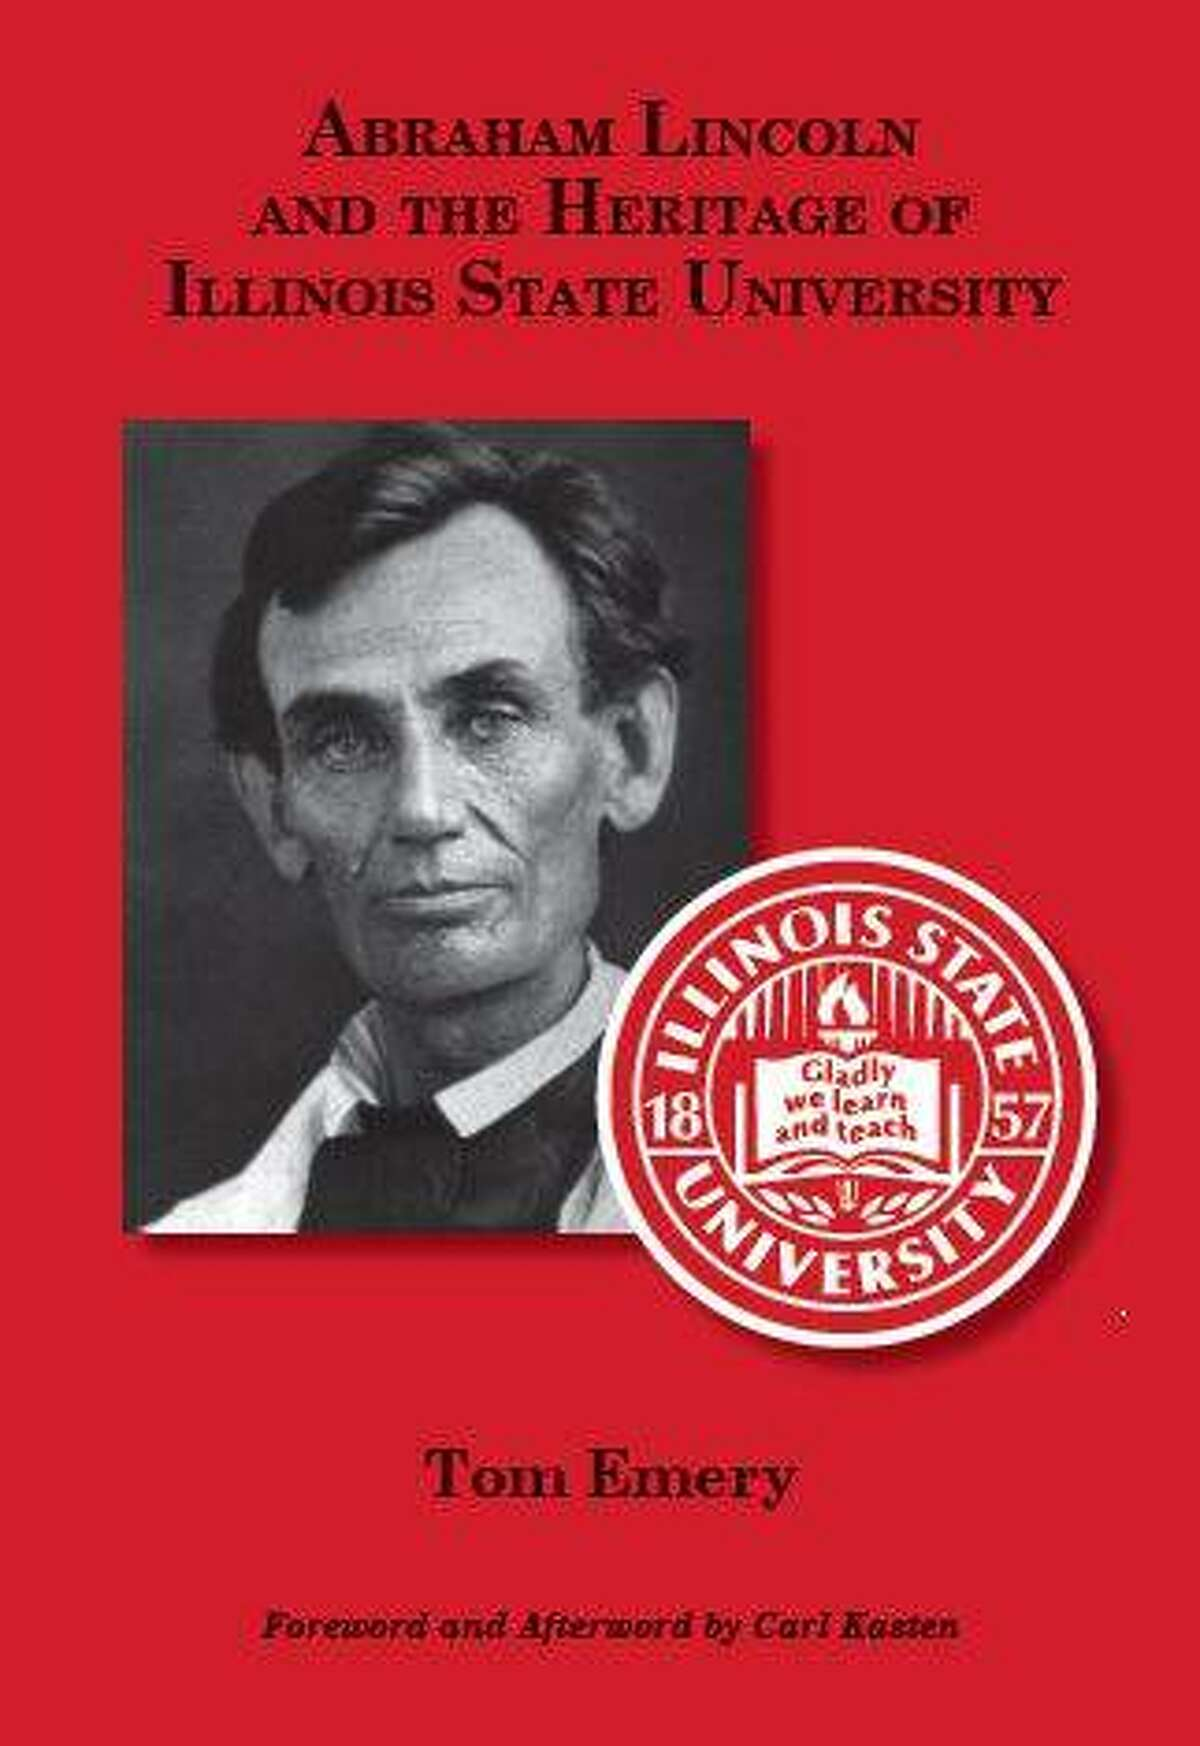 Tom Emery and Carl Kasten of Carlinville have created Abraham Lincoln and the Heritage of Illinois State University.